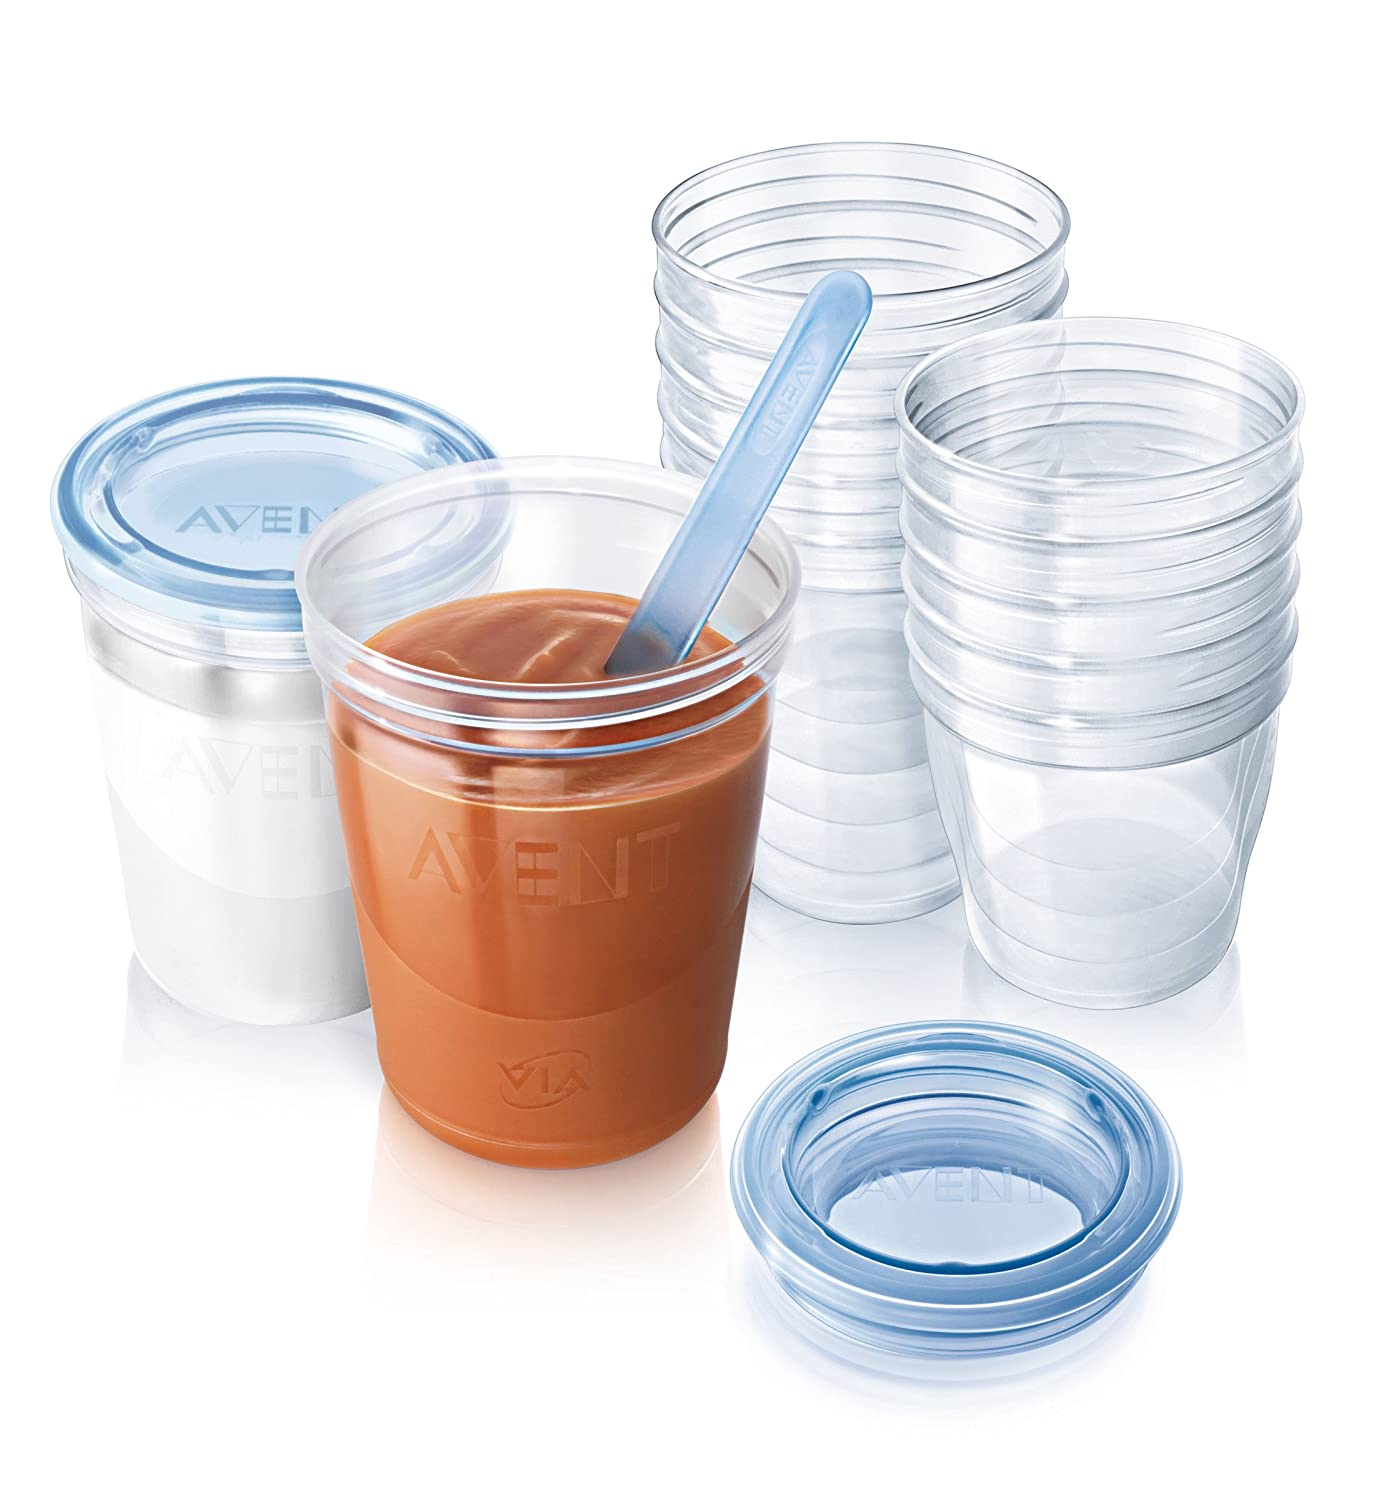 Philips Avent Scf720/10 Via Baby Food Storage Set HealthCentre